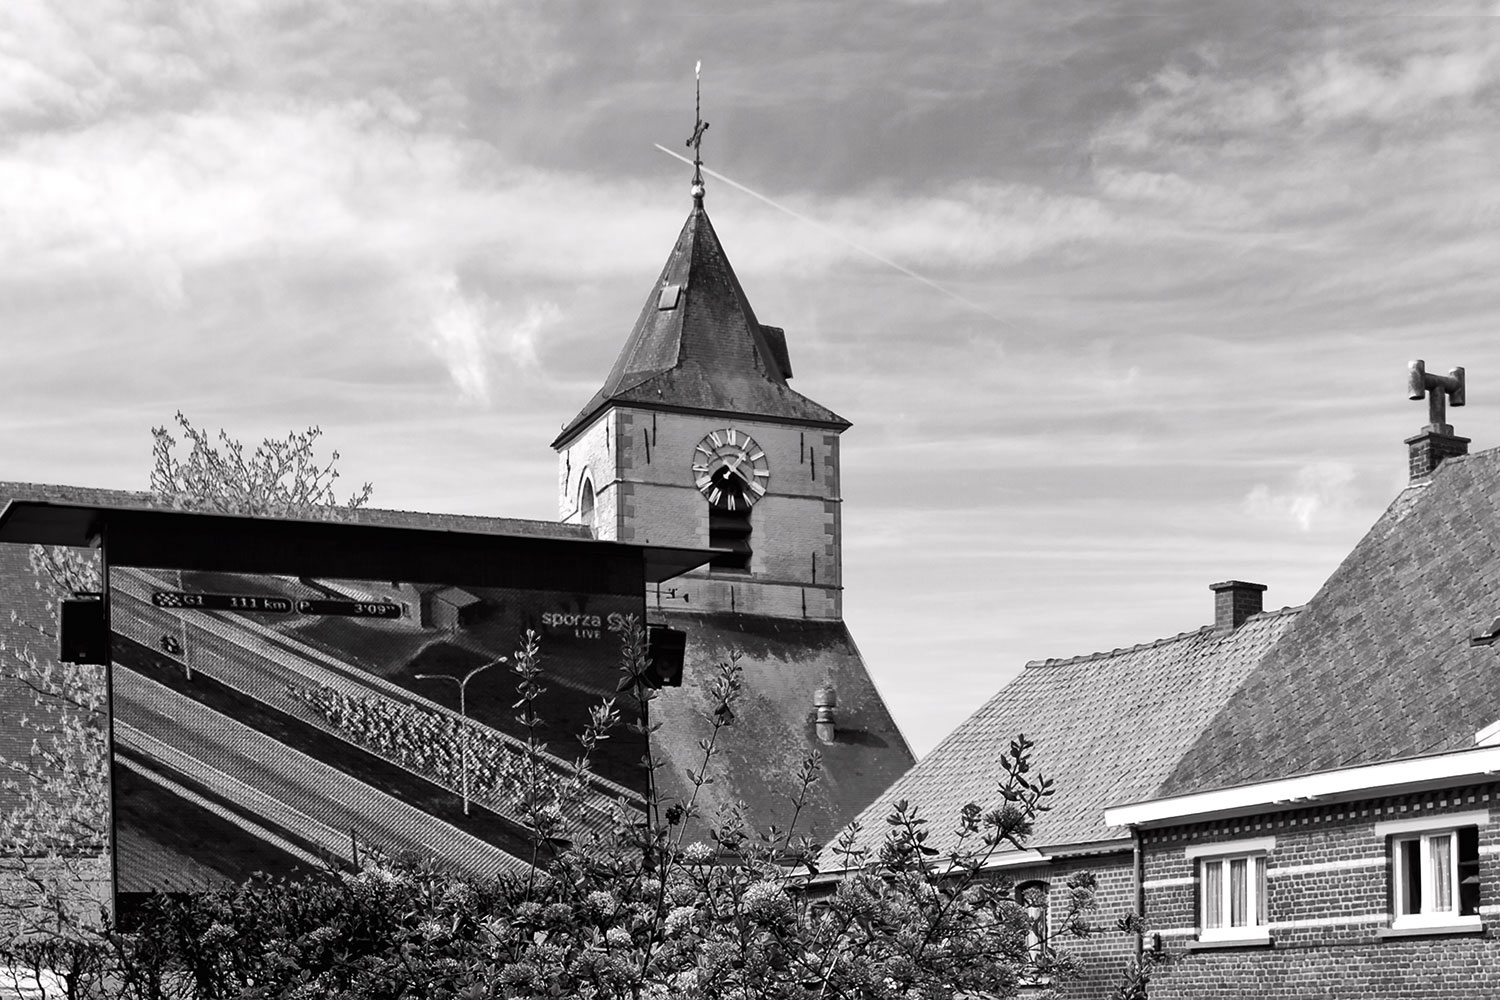 At the place, Oude Kwaremont